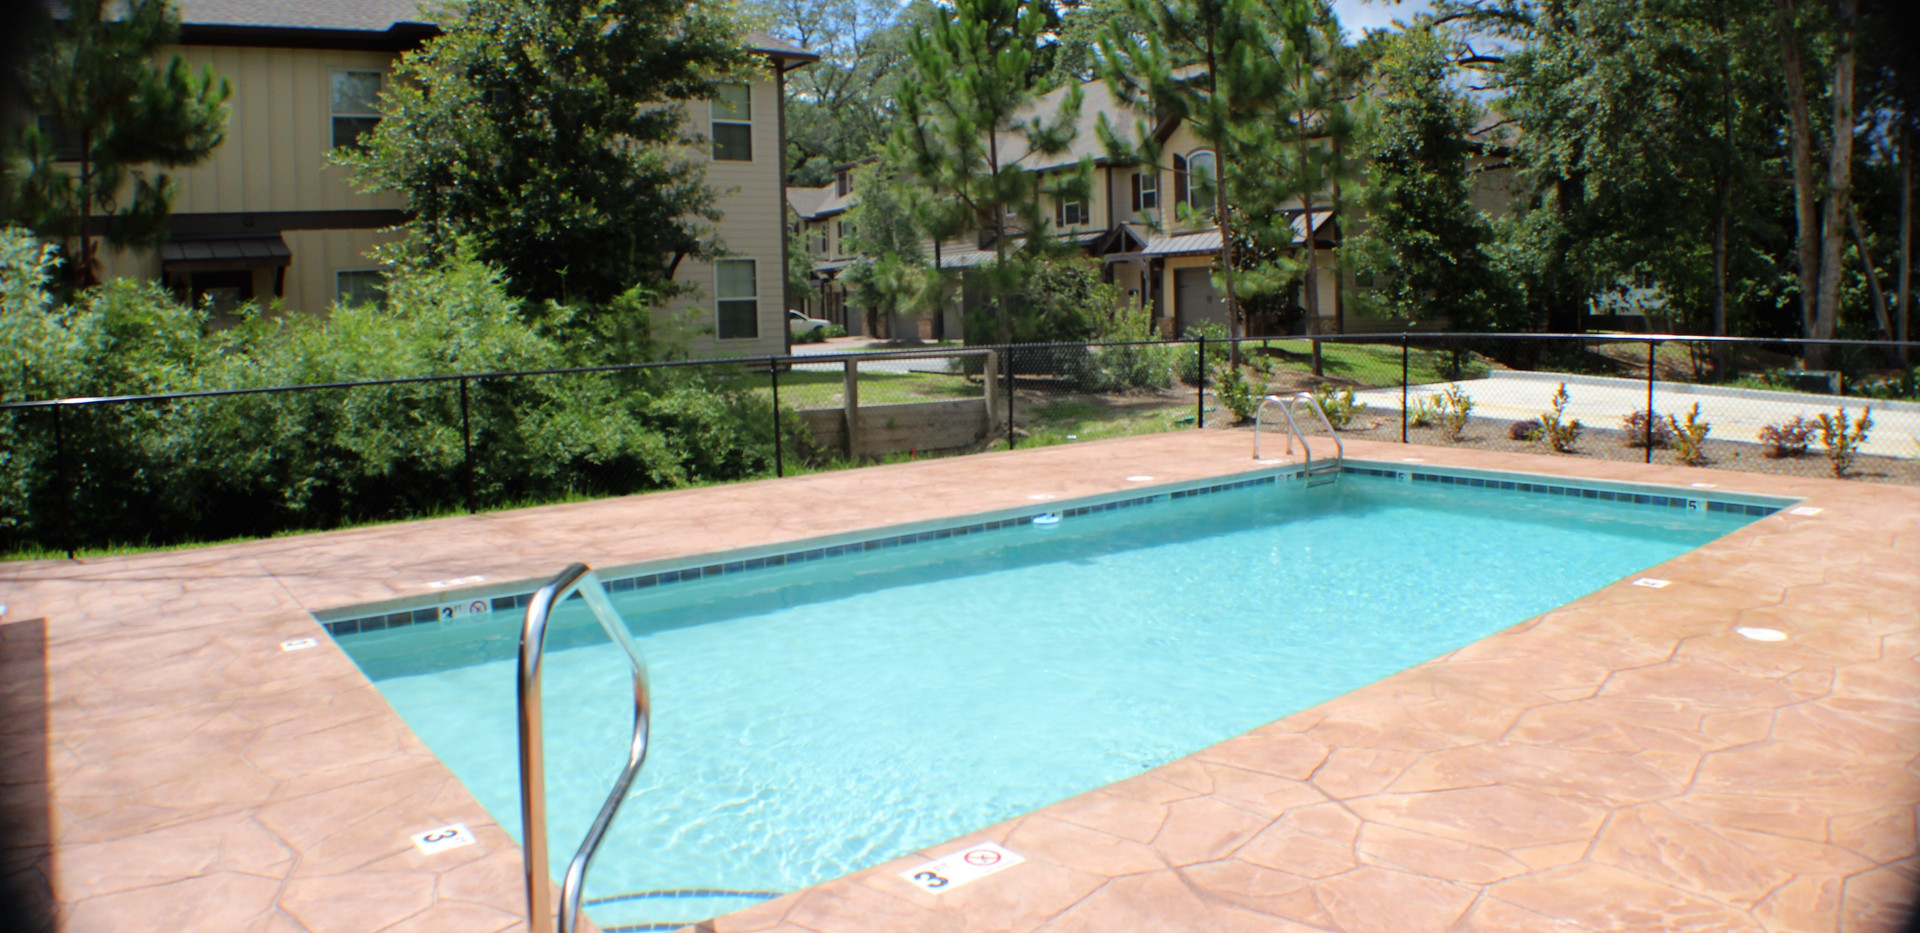 The_Woodlands_Pool_Pictures__1_.jpg